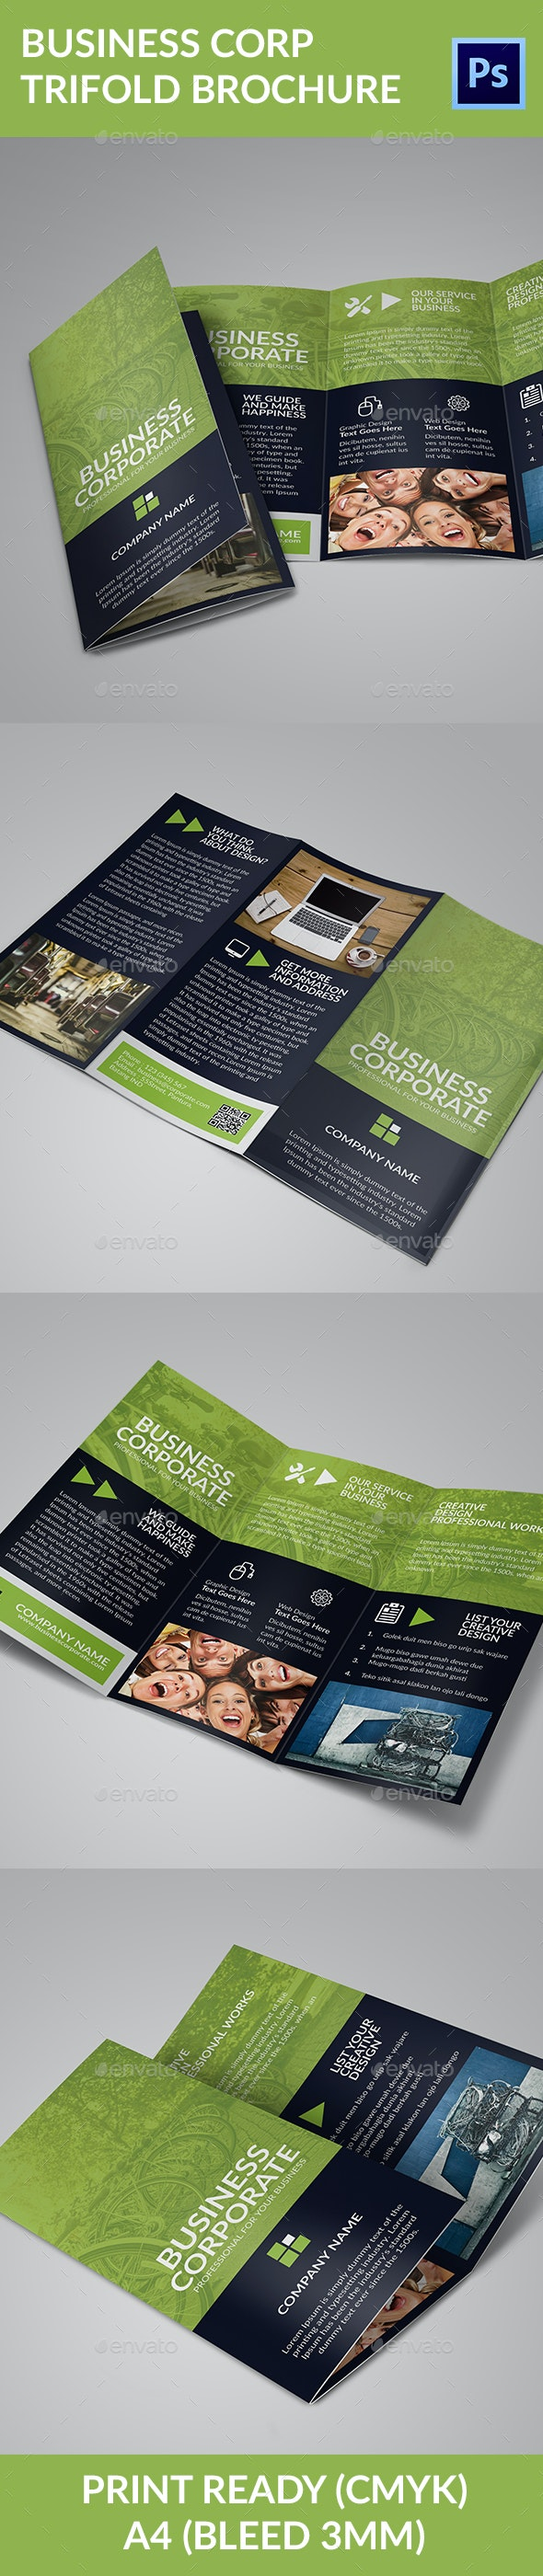 Business Corp Trifold Brochure - Corporate Brochures